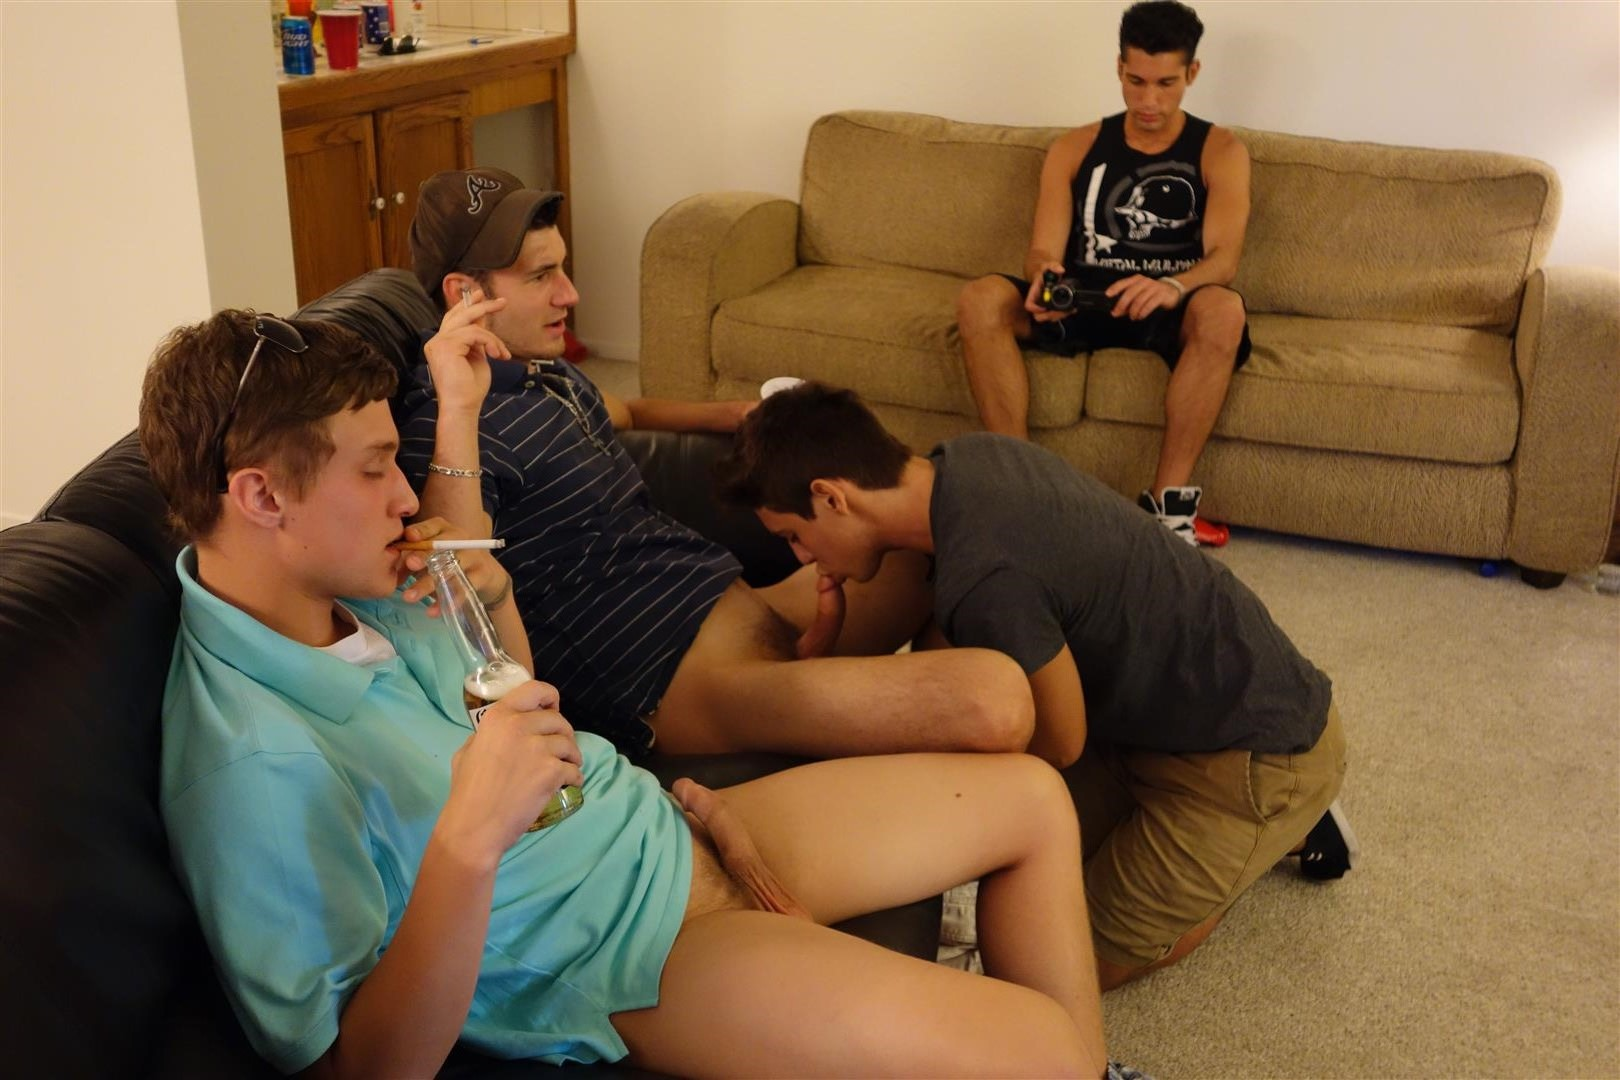 Fraternity X Drunk Frat Pledge Gets Barebacked While Passed Out Amateur Gay Porn 01 Drunk And Passed Out Frat Pledge Gets Fucked Bareback